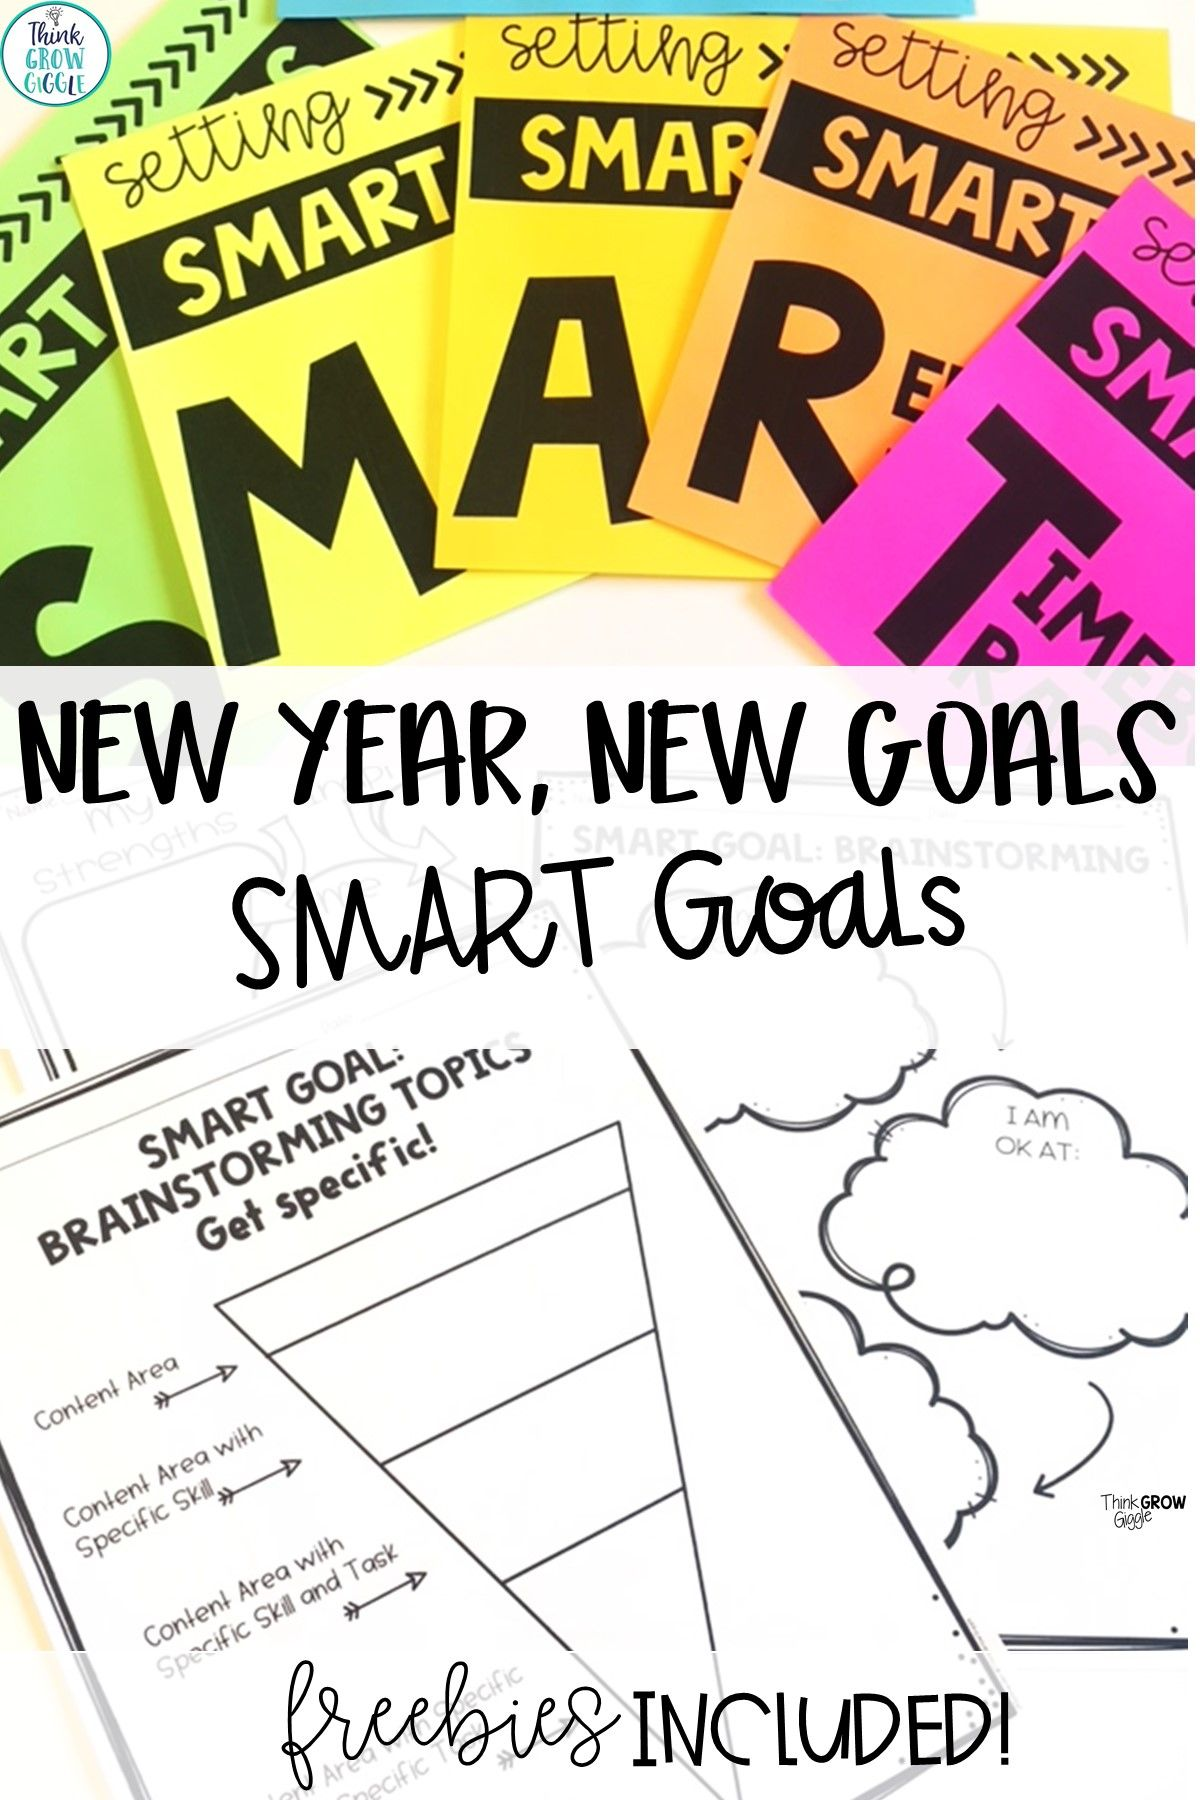 New Year Goal Setting For Kids And Students Smart Goals Smart Goals Worksheet Goal Setting For Students [ 1800 x 1200 Pixel ]